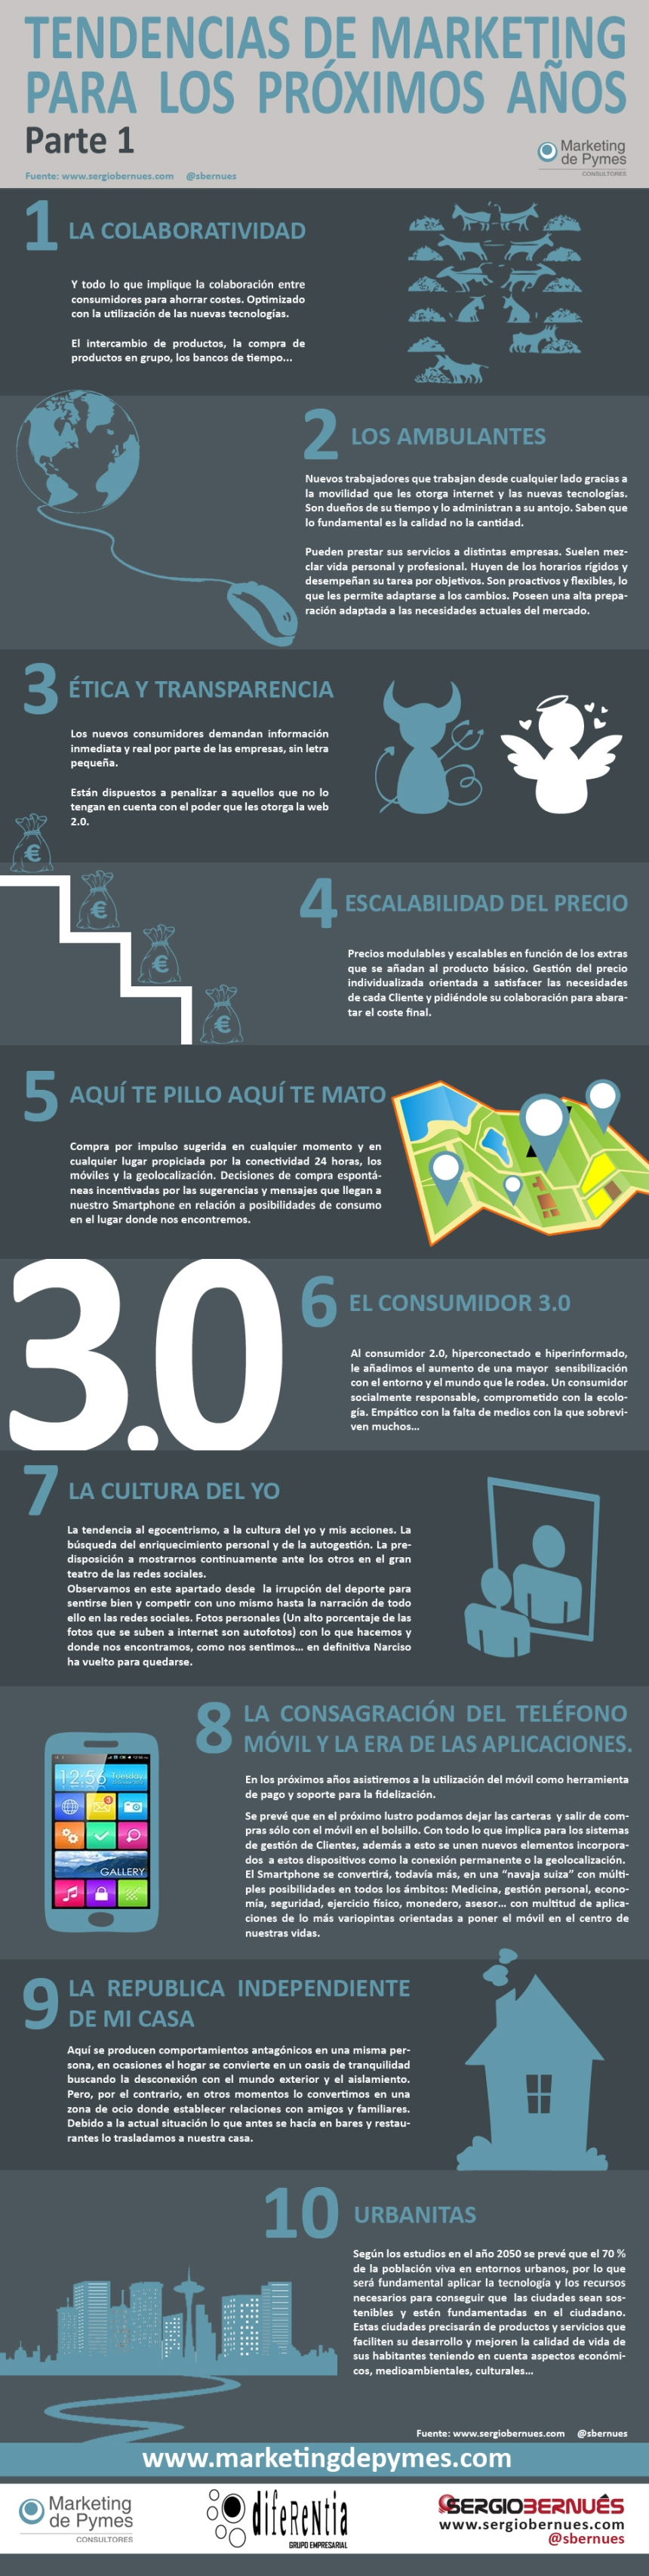 Tendencias de marketing para los próximos años (I)